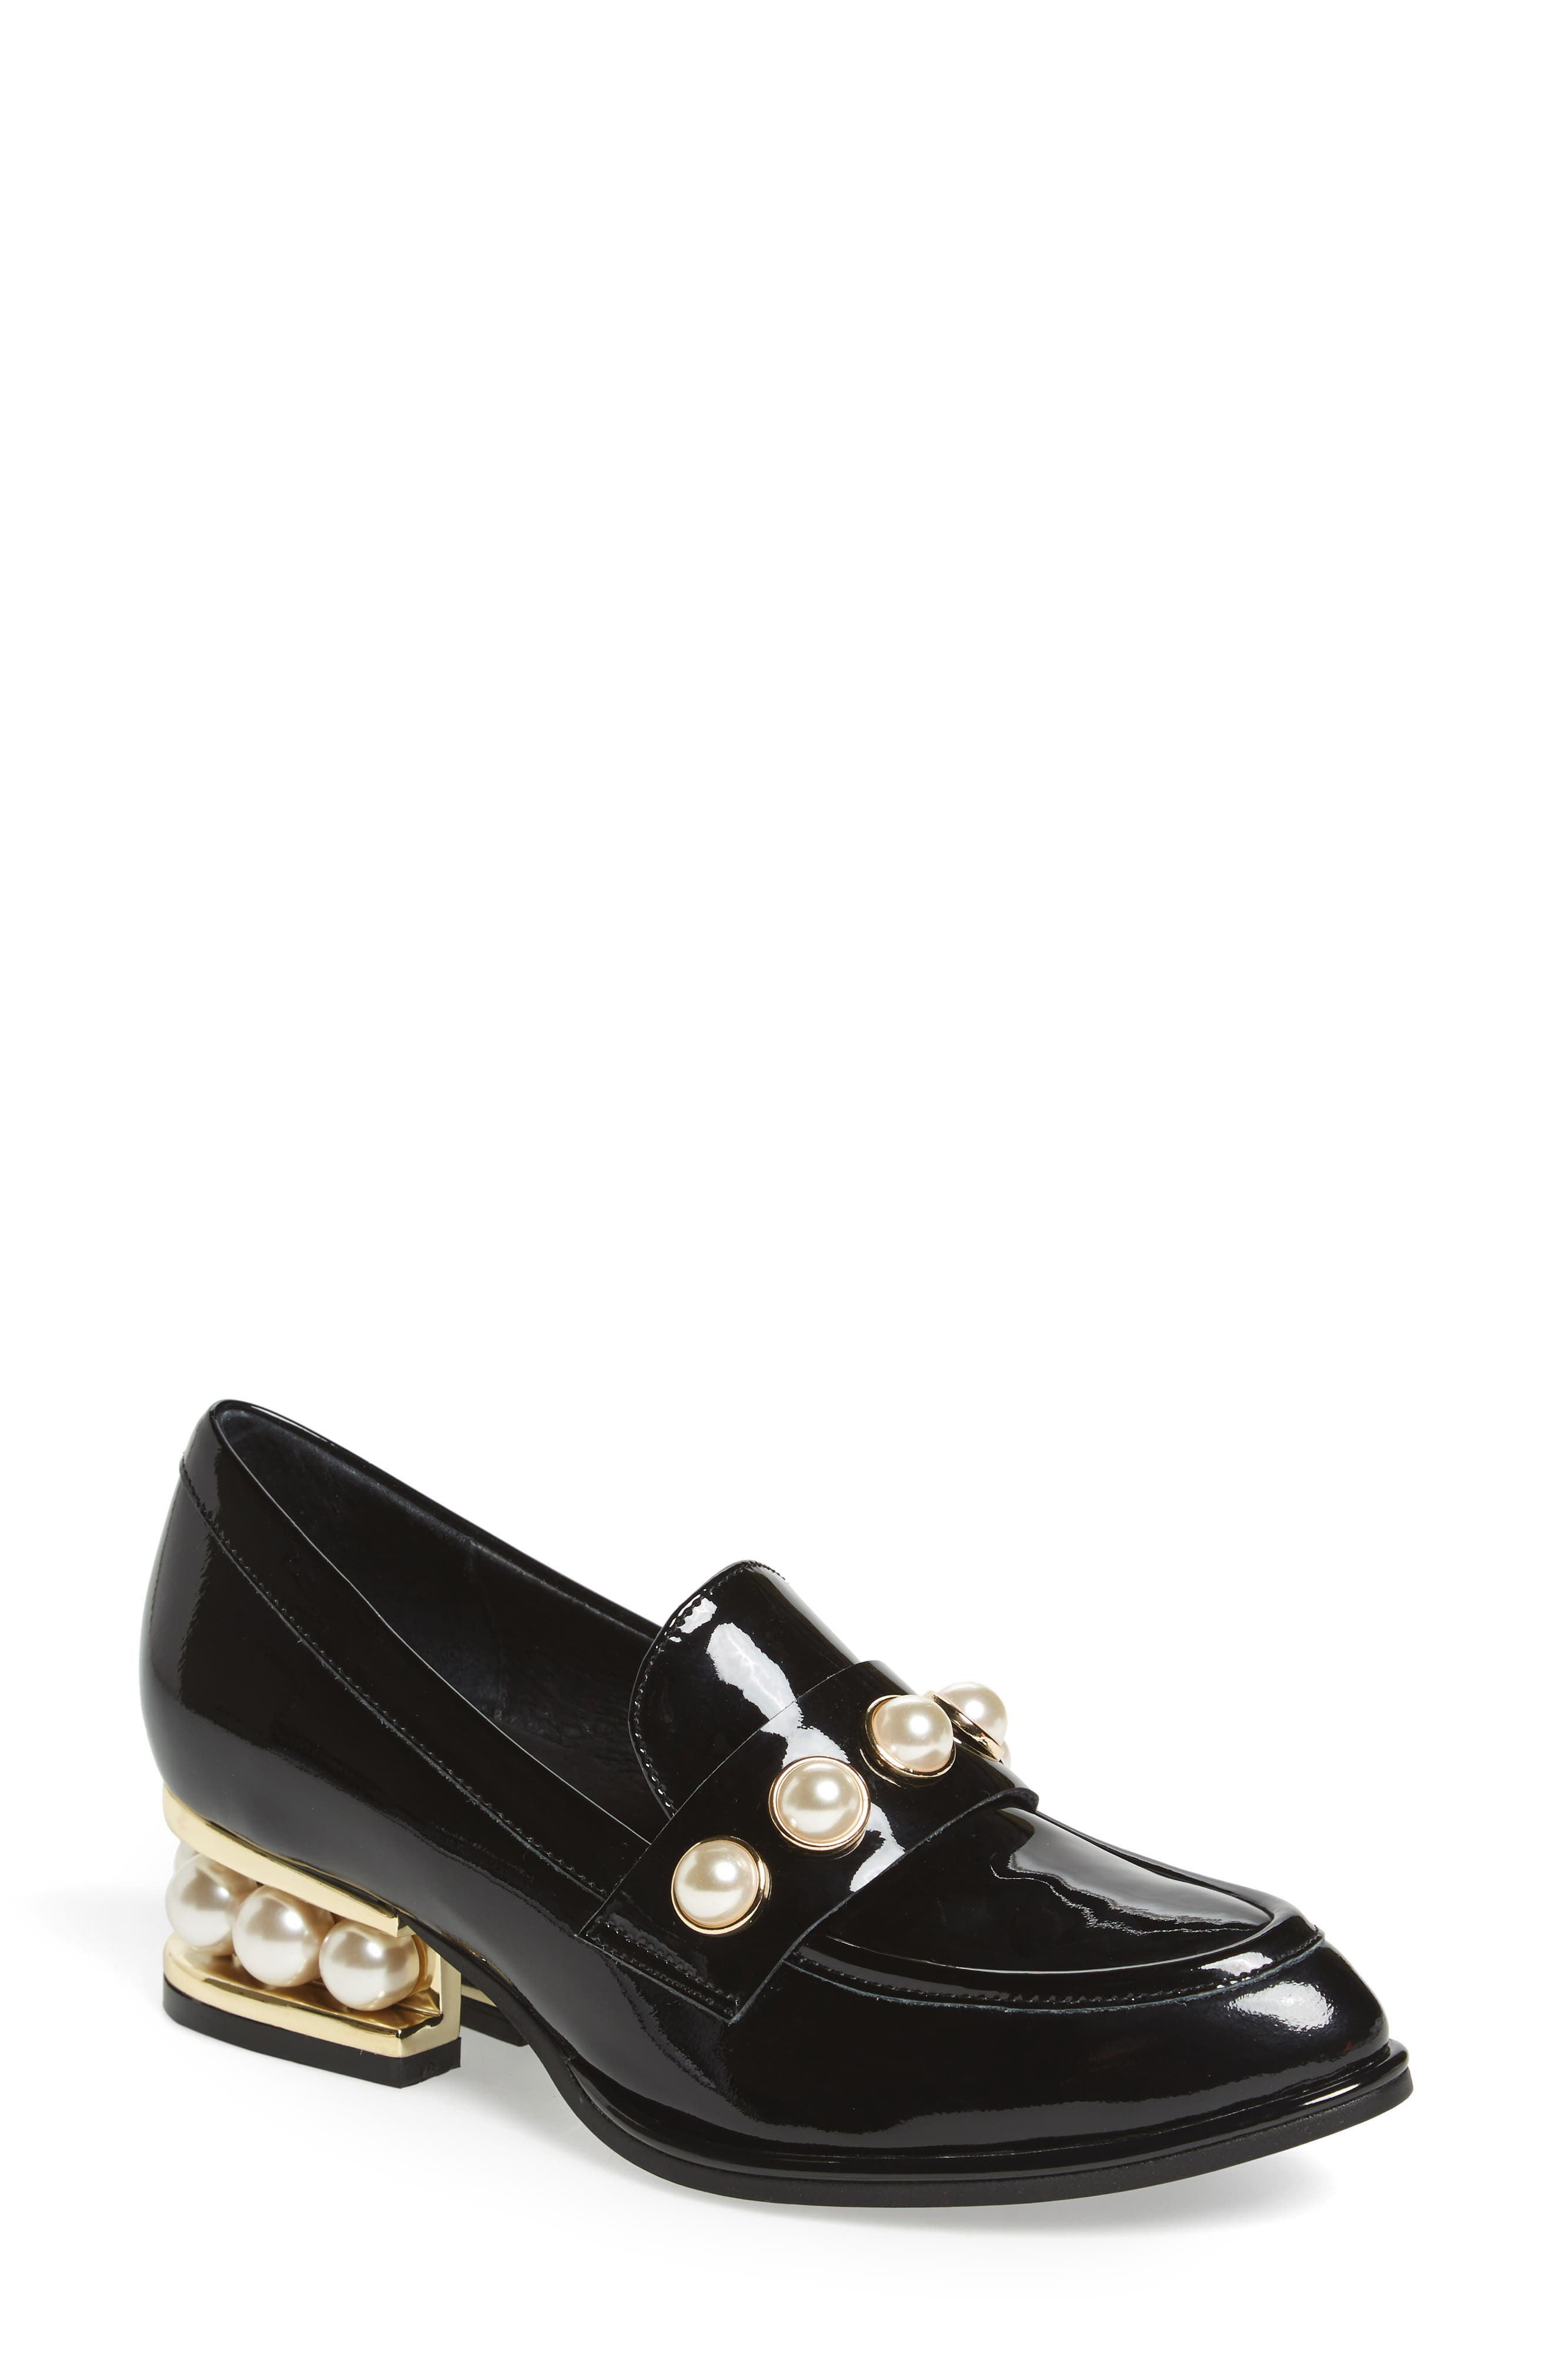 Alternate Image 1 Selected - Jeffrey Campbell Stathy Loafer (Women)